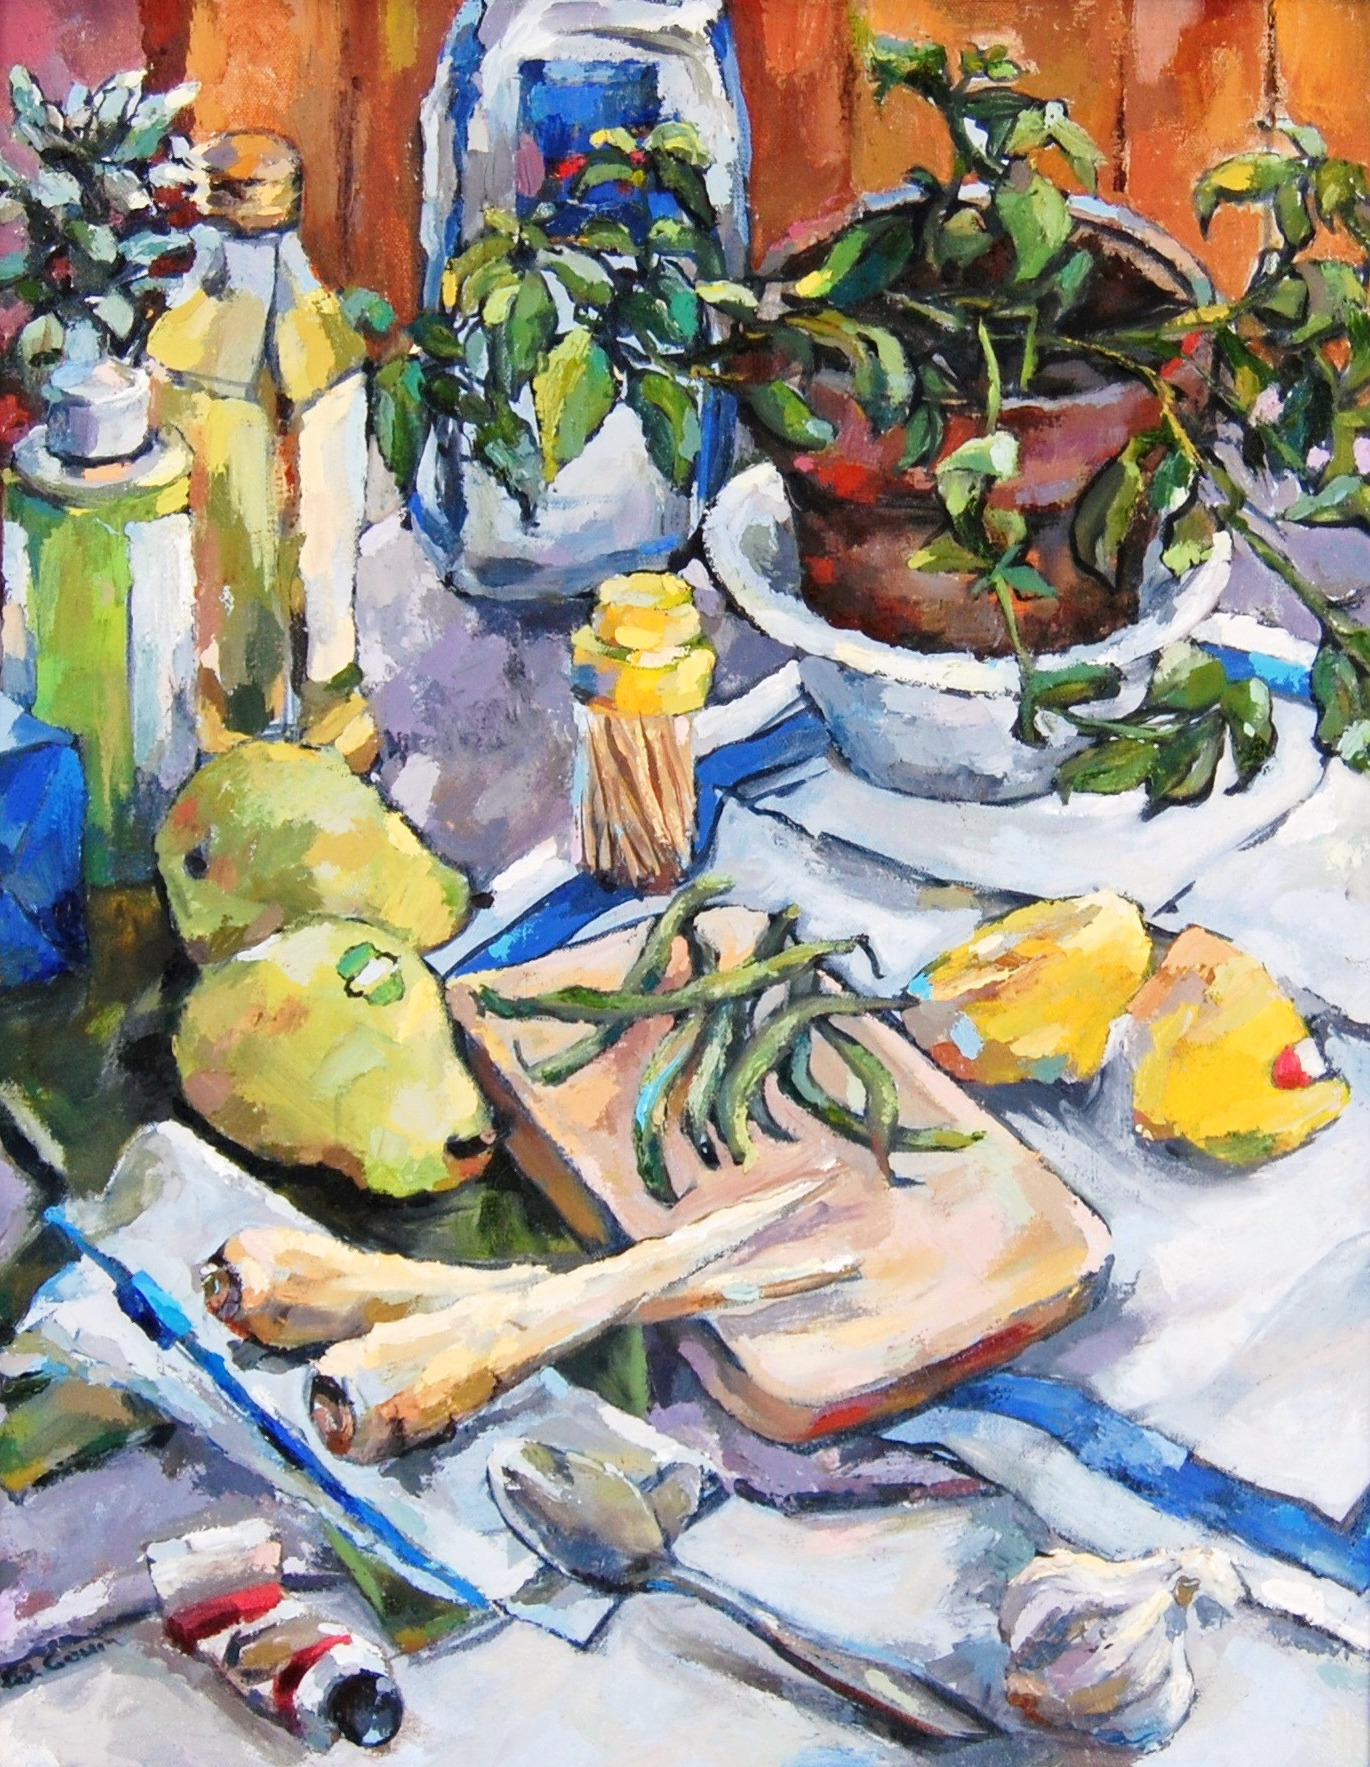 Still Life with Parsnips, Oil on Canvas, 2014